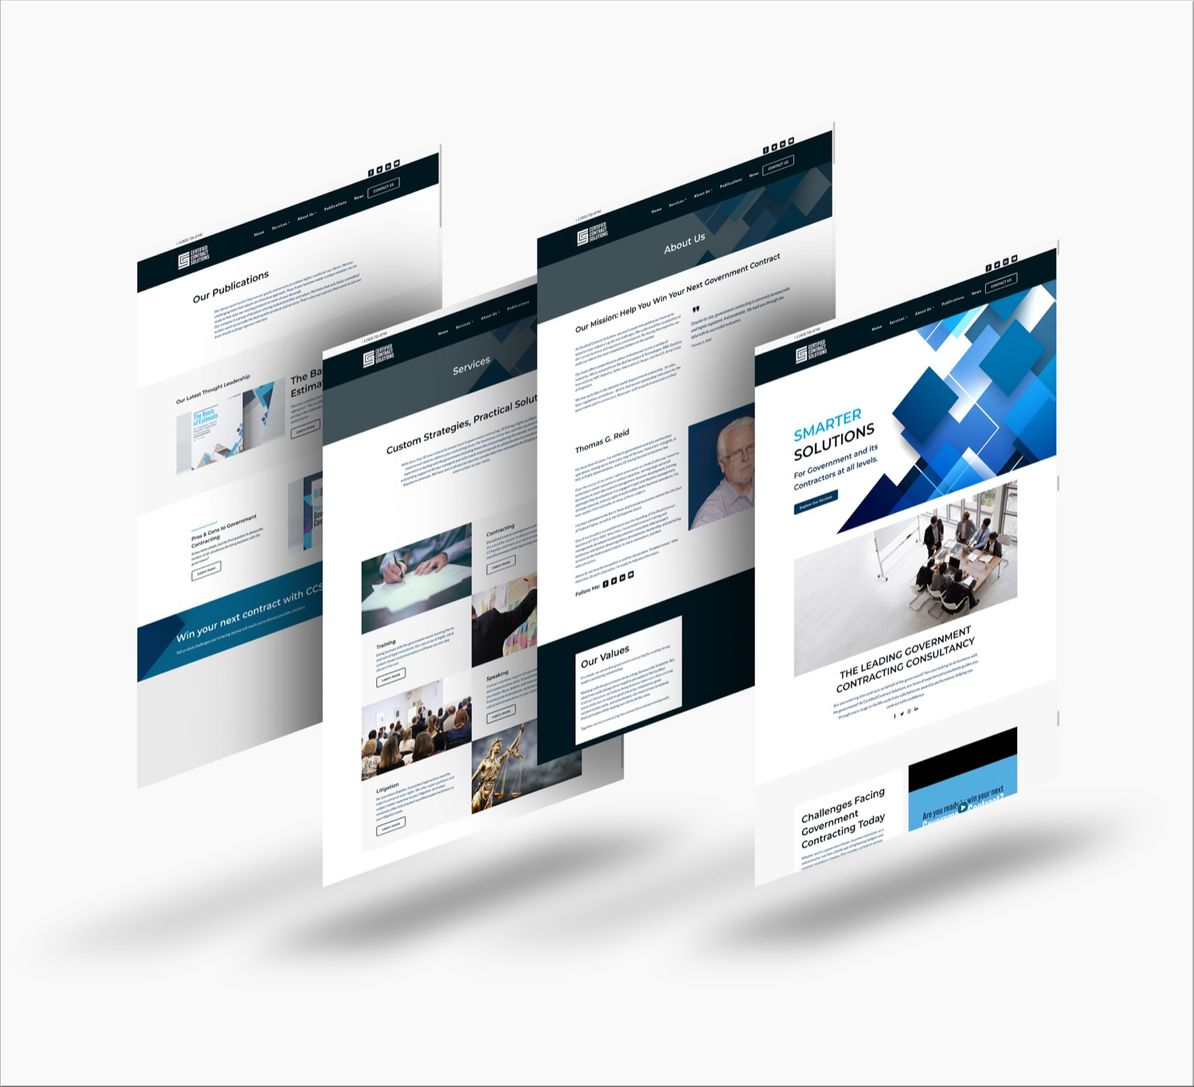 Certified Contract Solutions Website Design and Development by Splurge Media